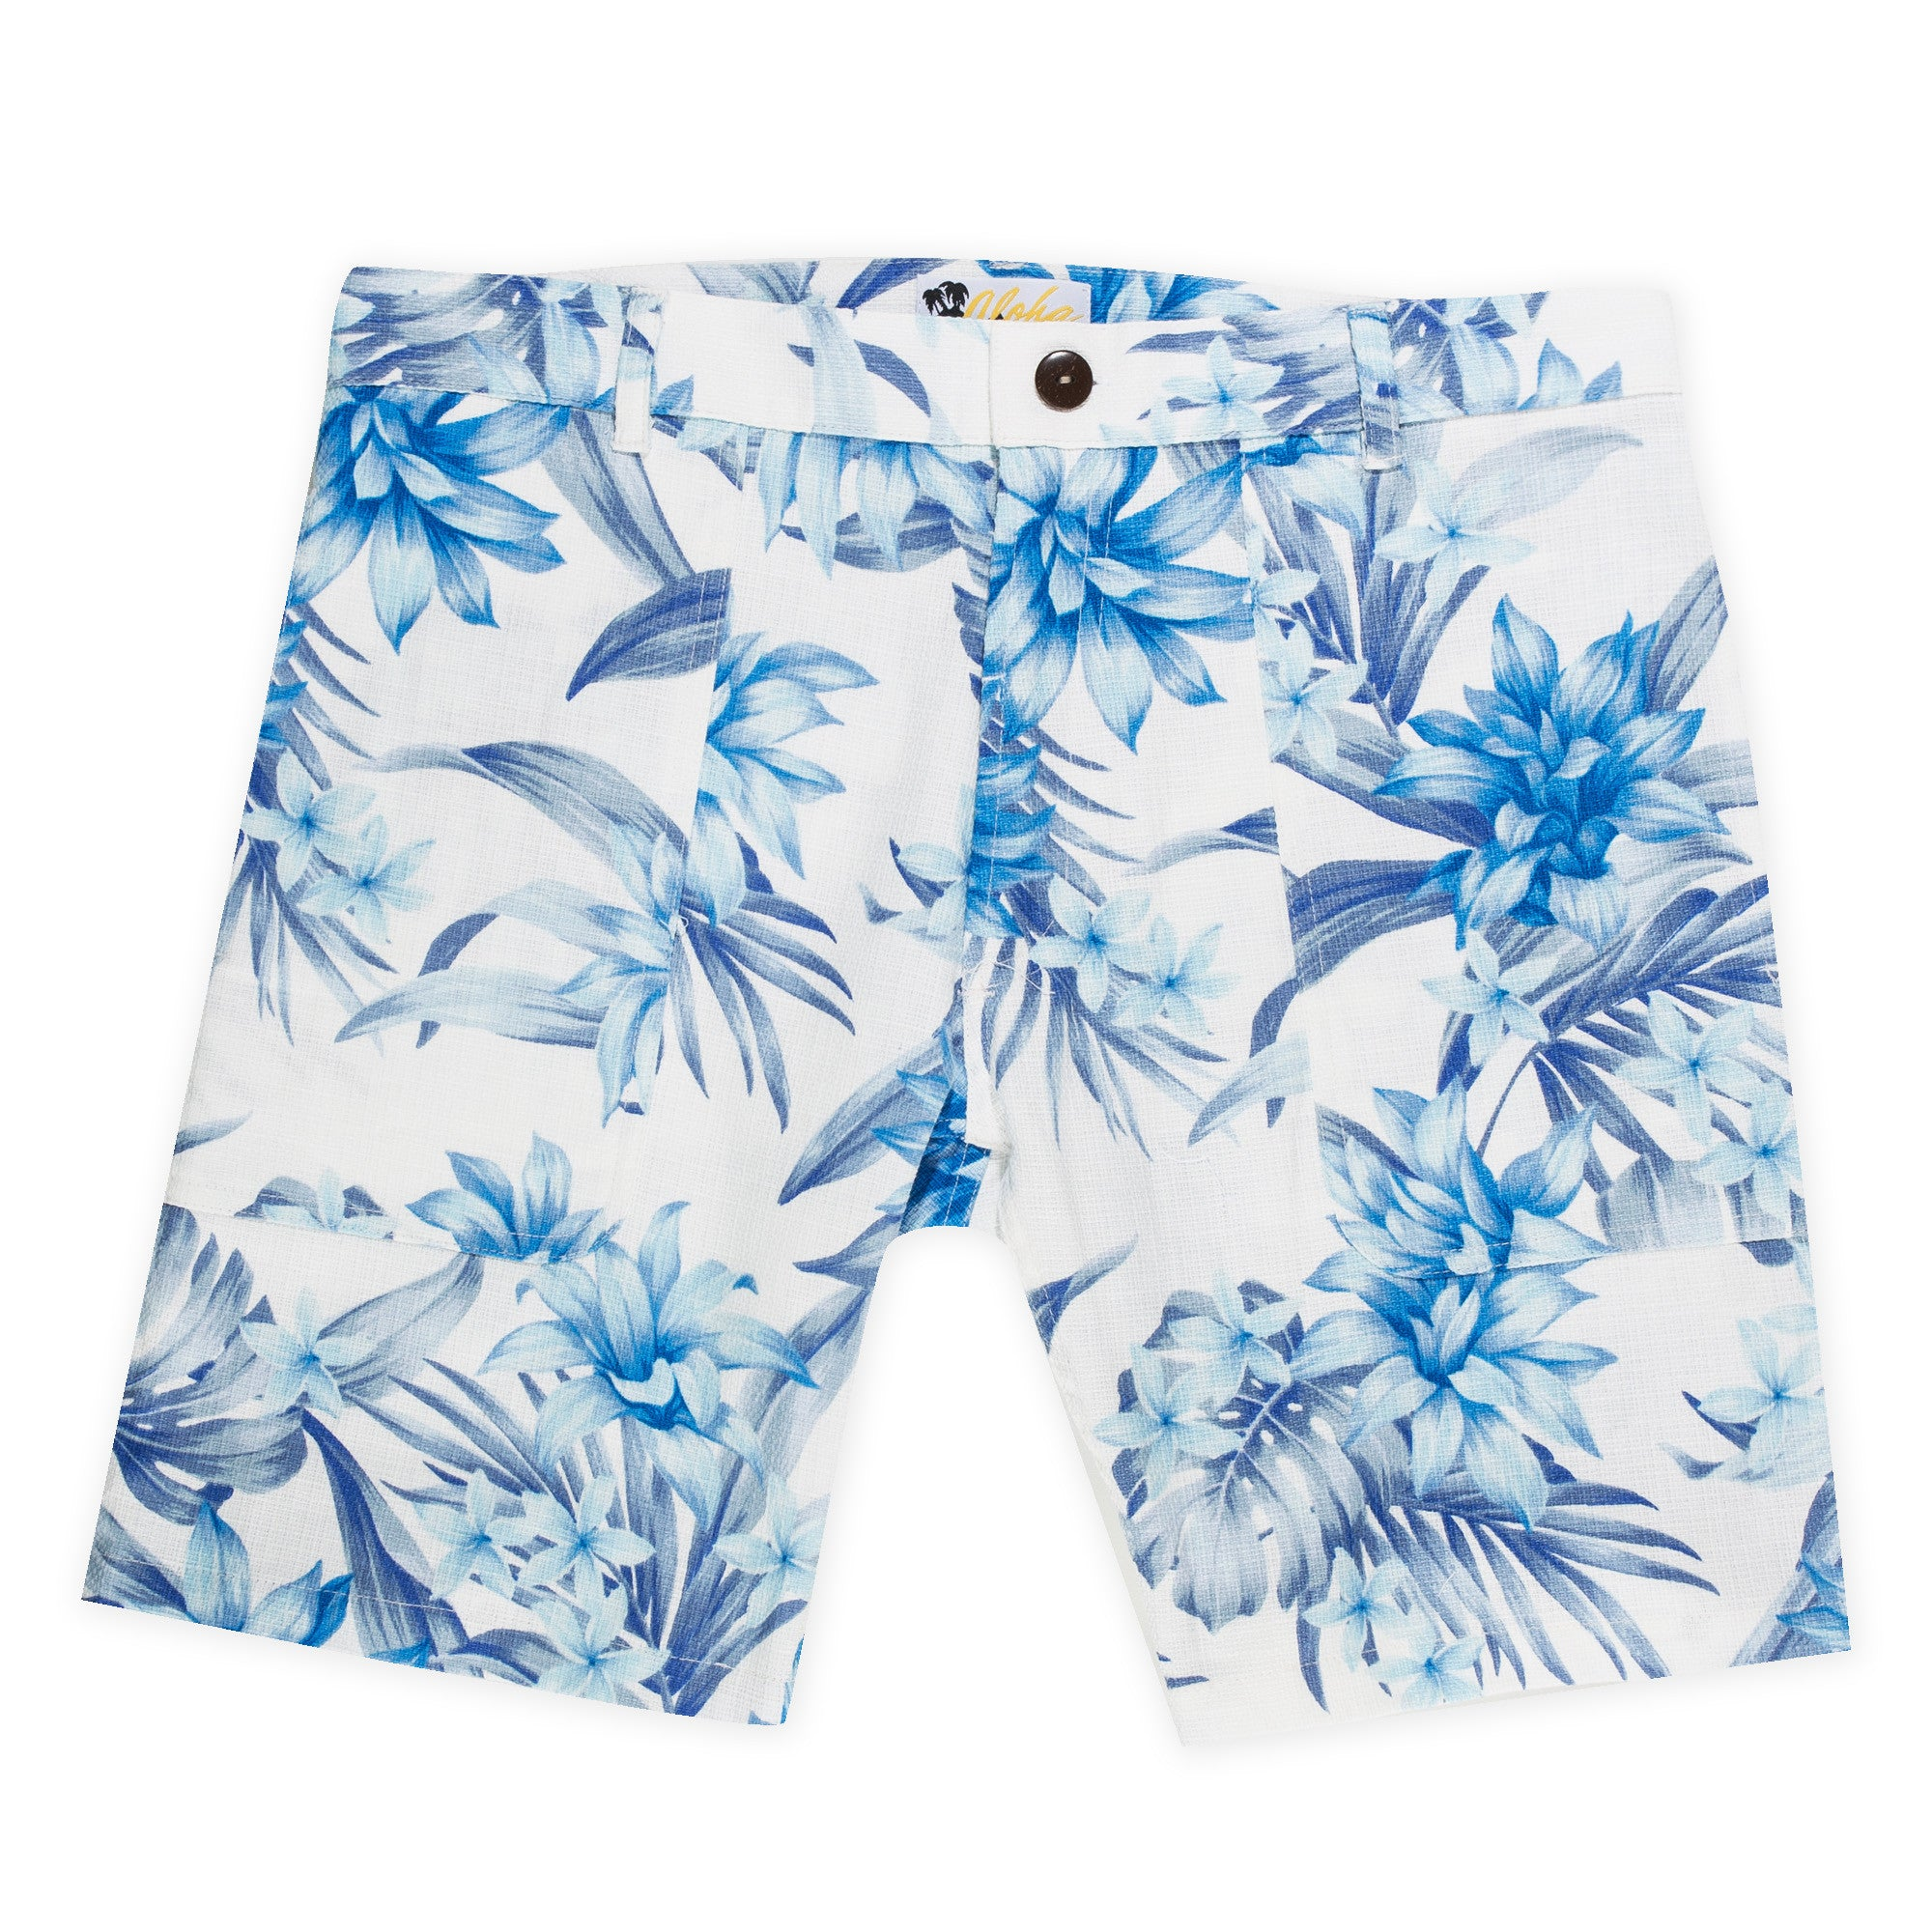 Aloha Beach Club - Hattie Floral Sea Camp Walkshort - Aloha Beach Club